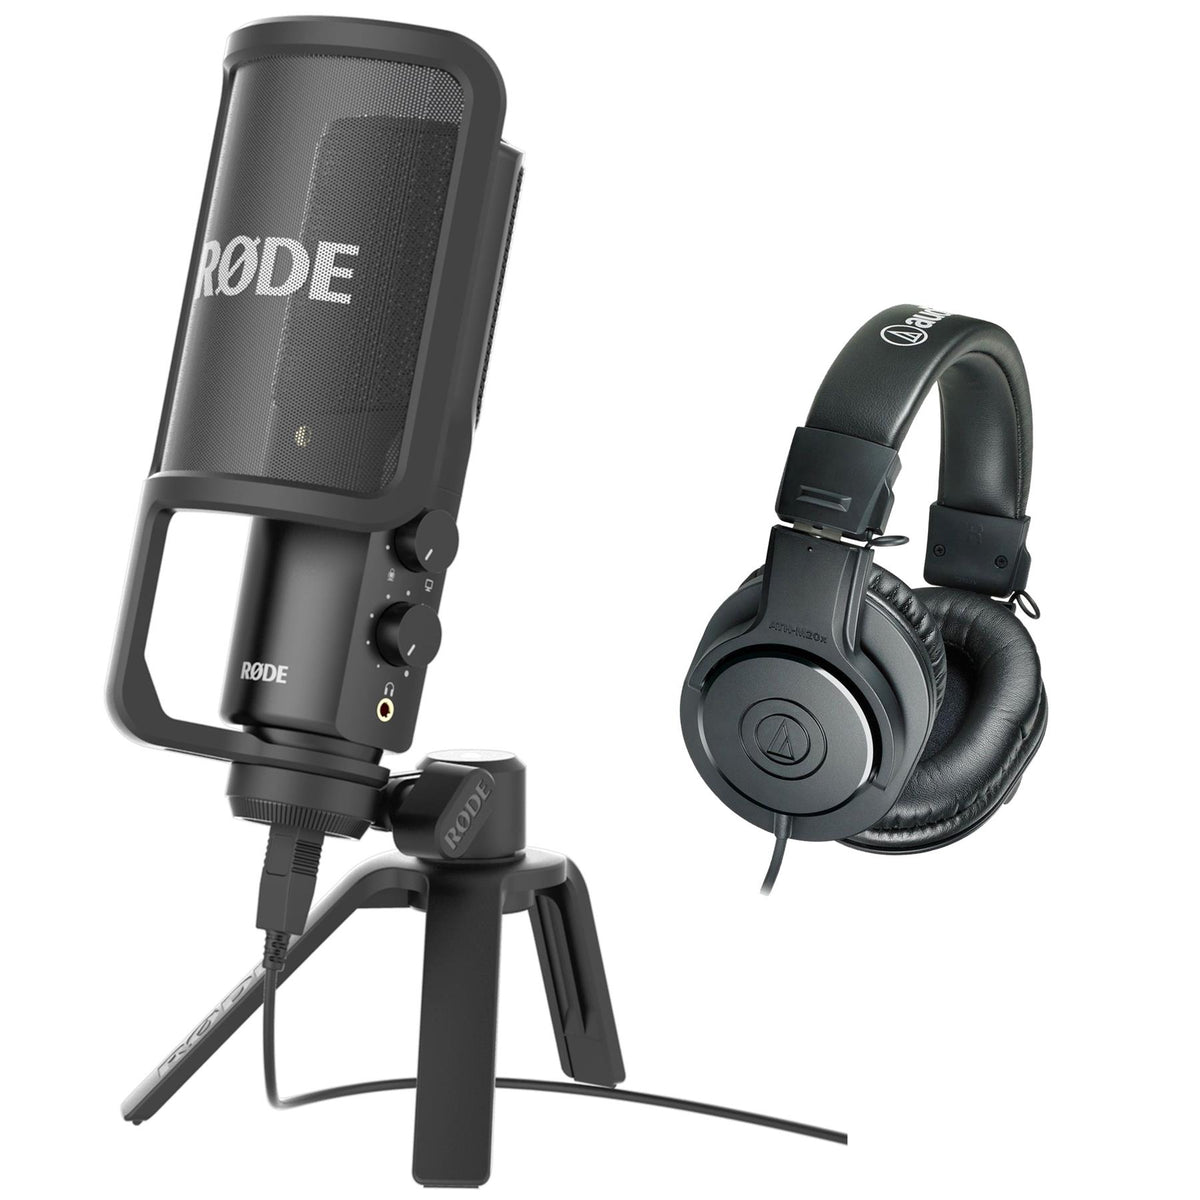 Rode NT-USB Microphone Bundle with Audio-Technica ATH-M20x Headphones